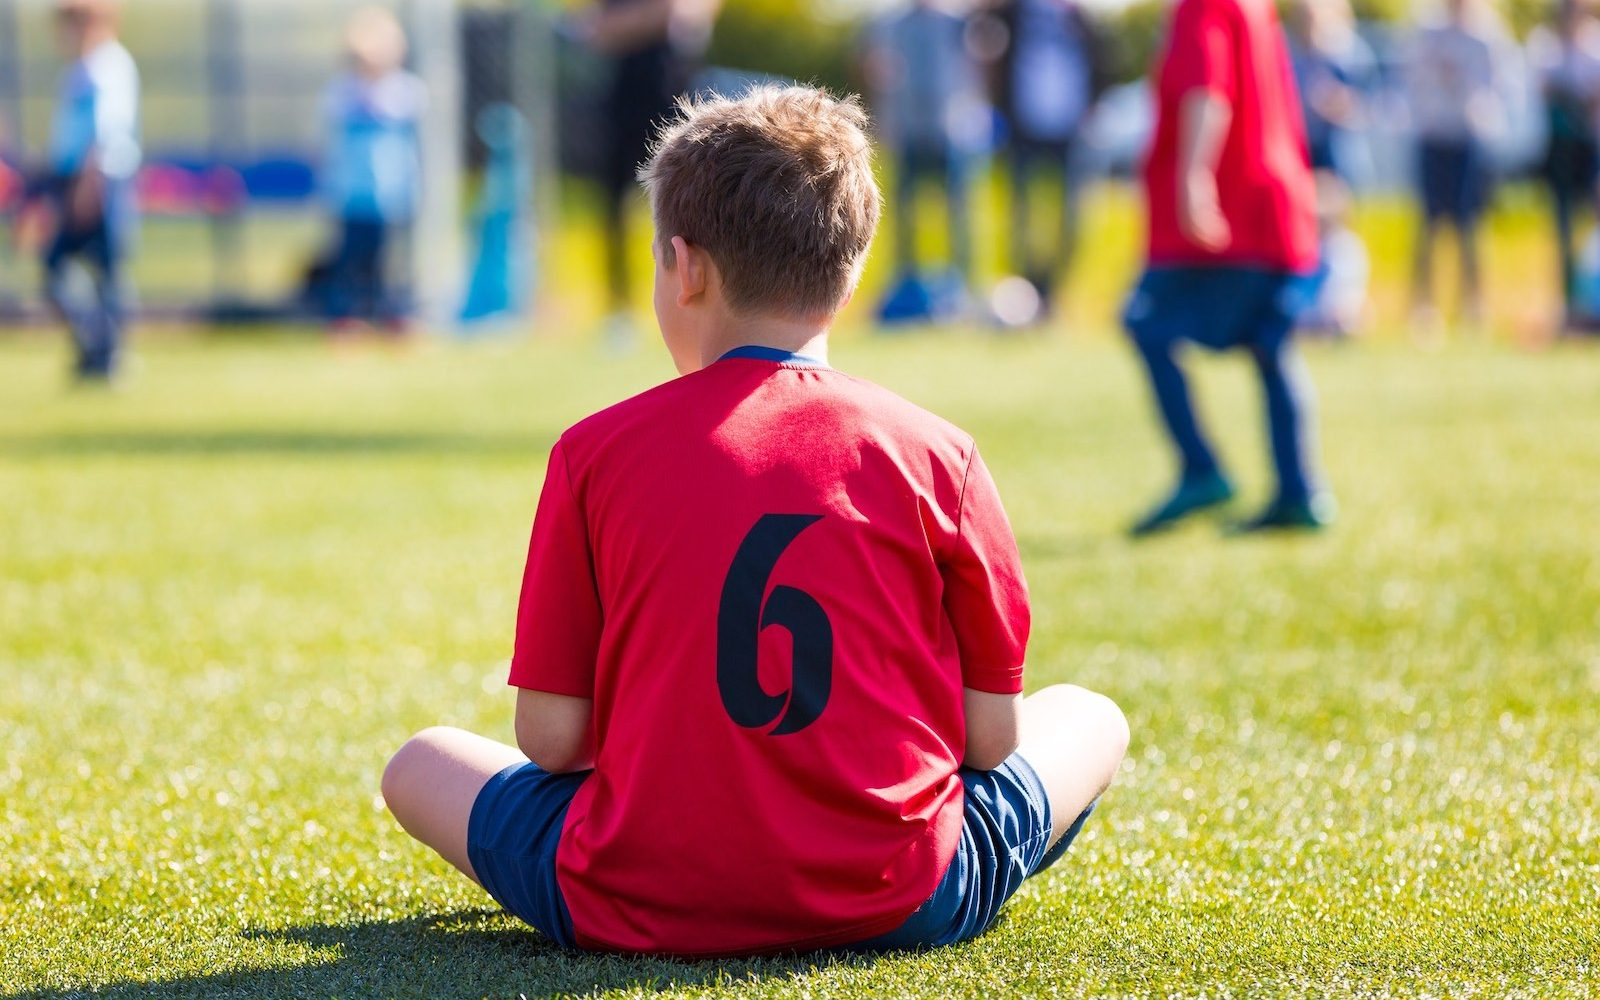 Young soccer player sitting on sports field.